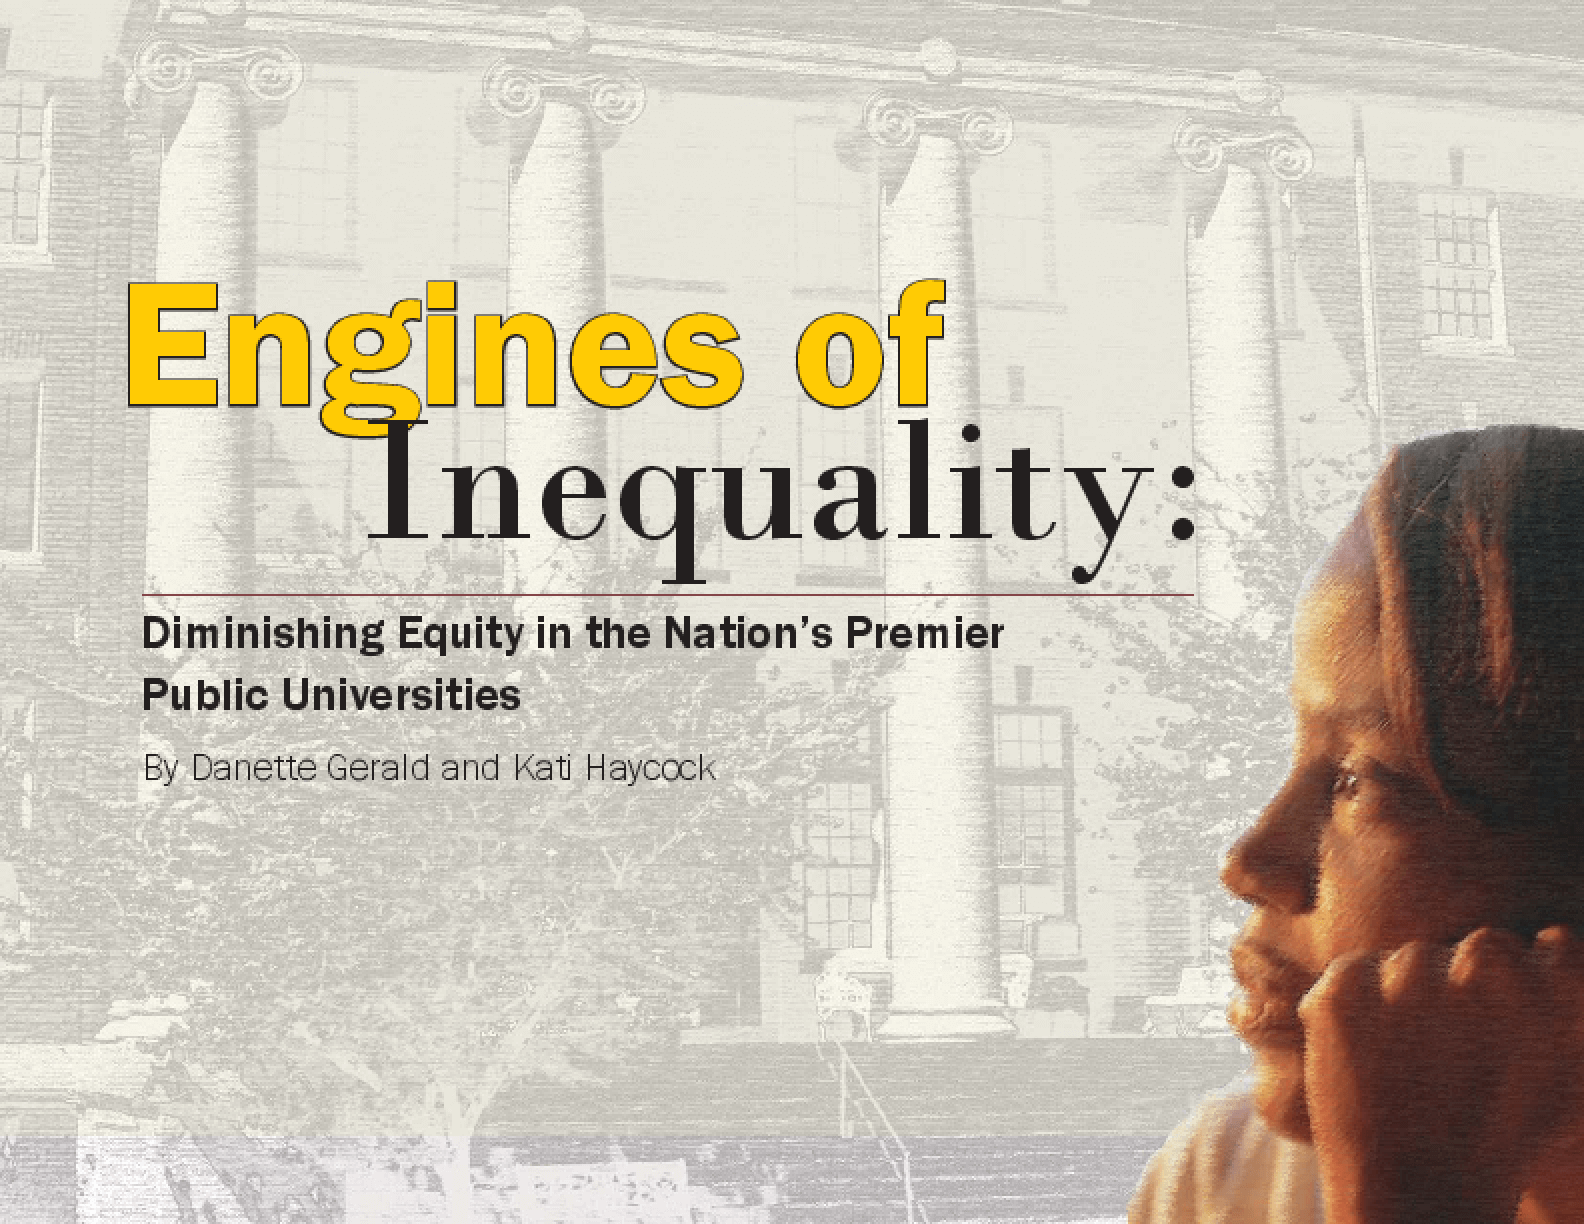 Engines of Inequality: Diminishing Equity in the Nation's Premier Public Universities